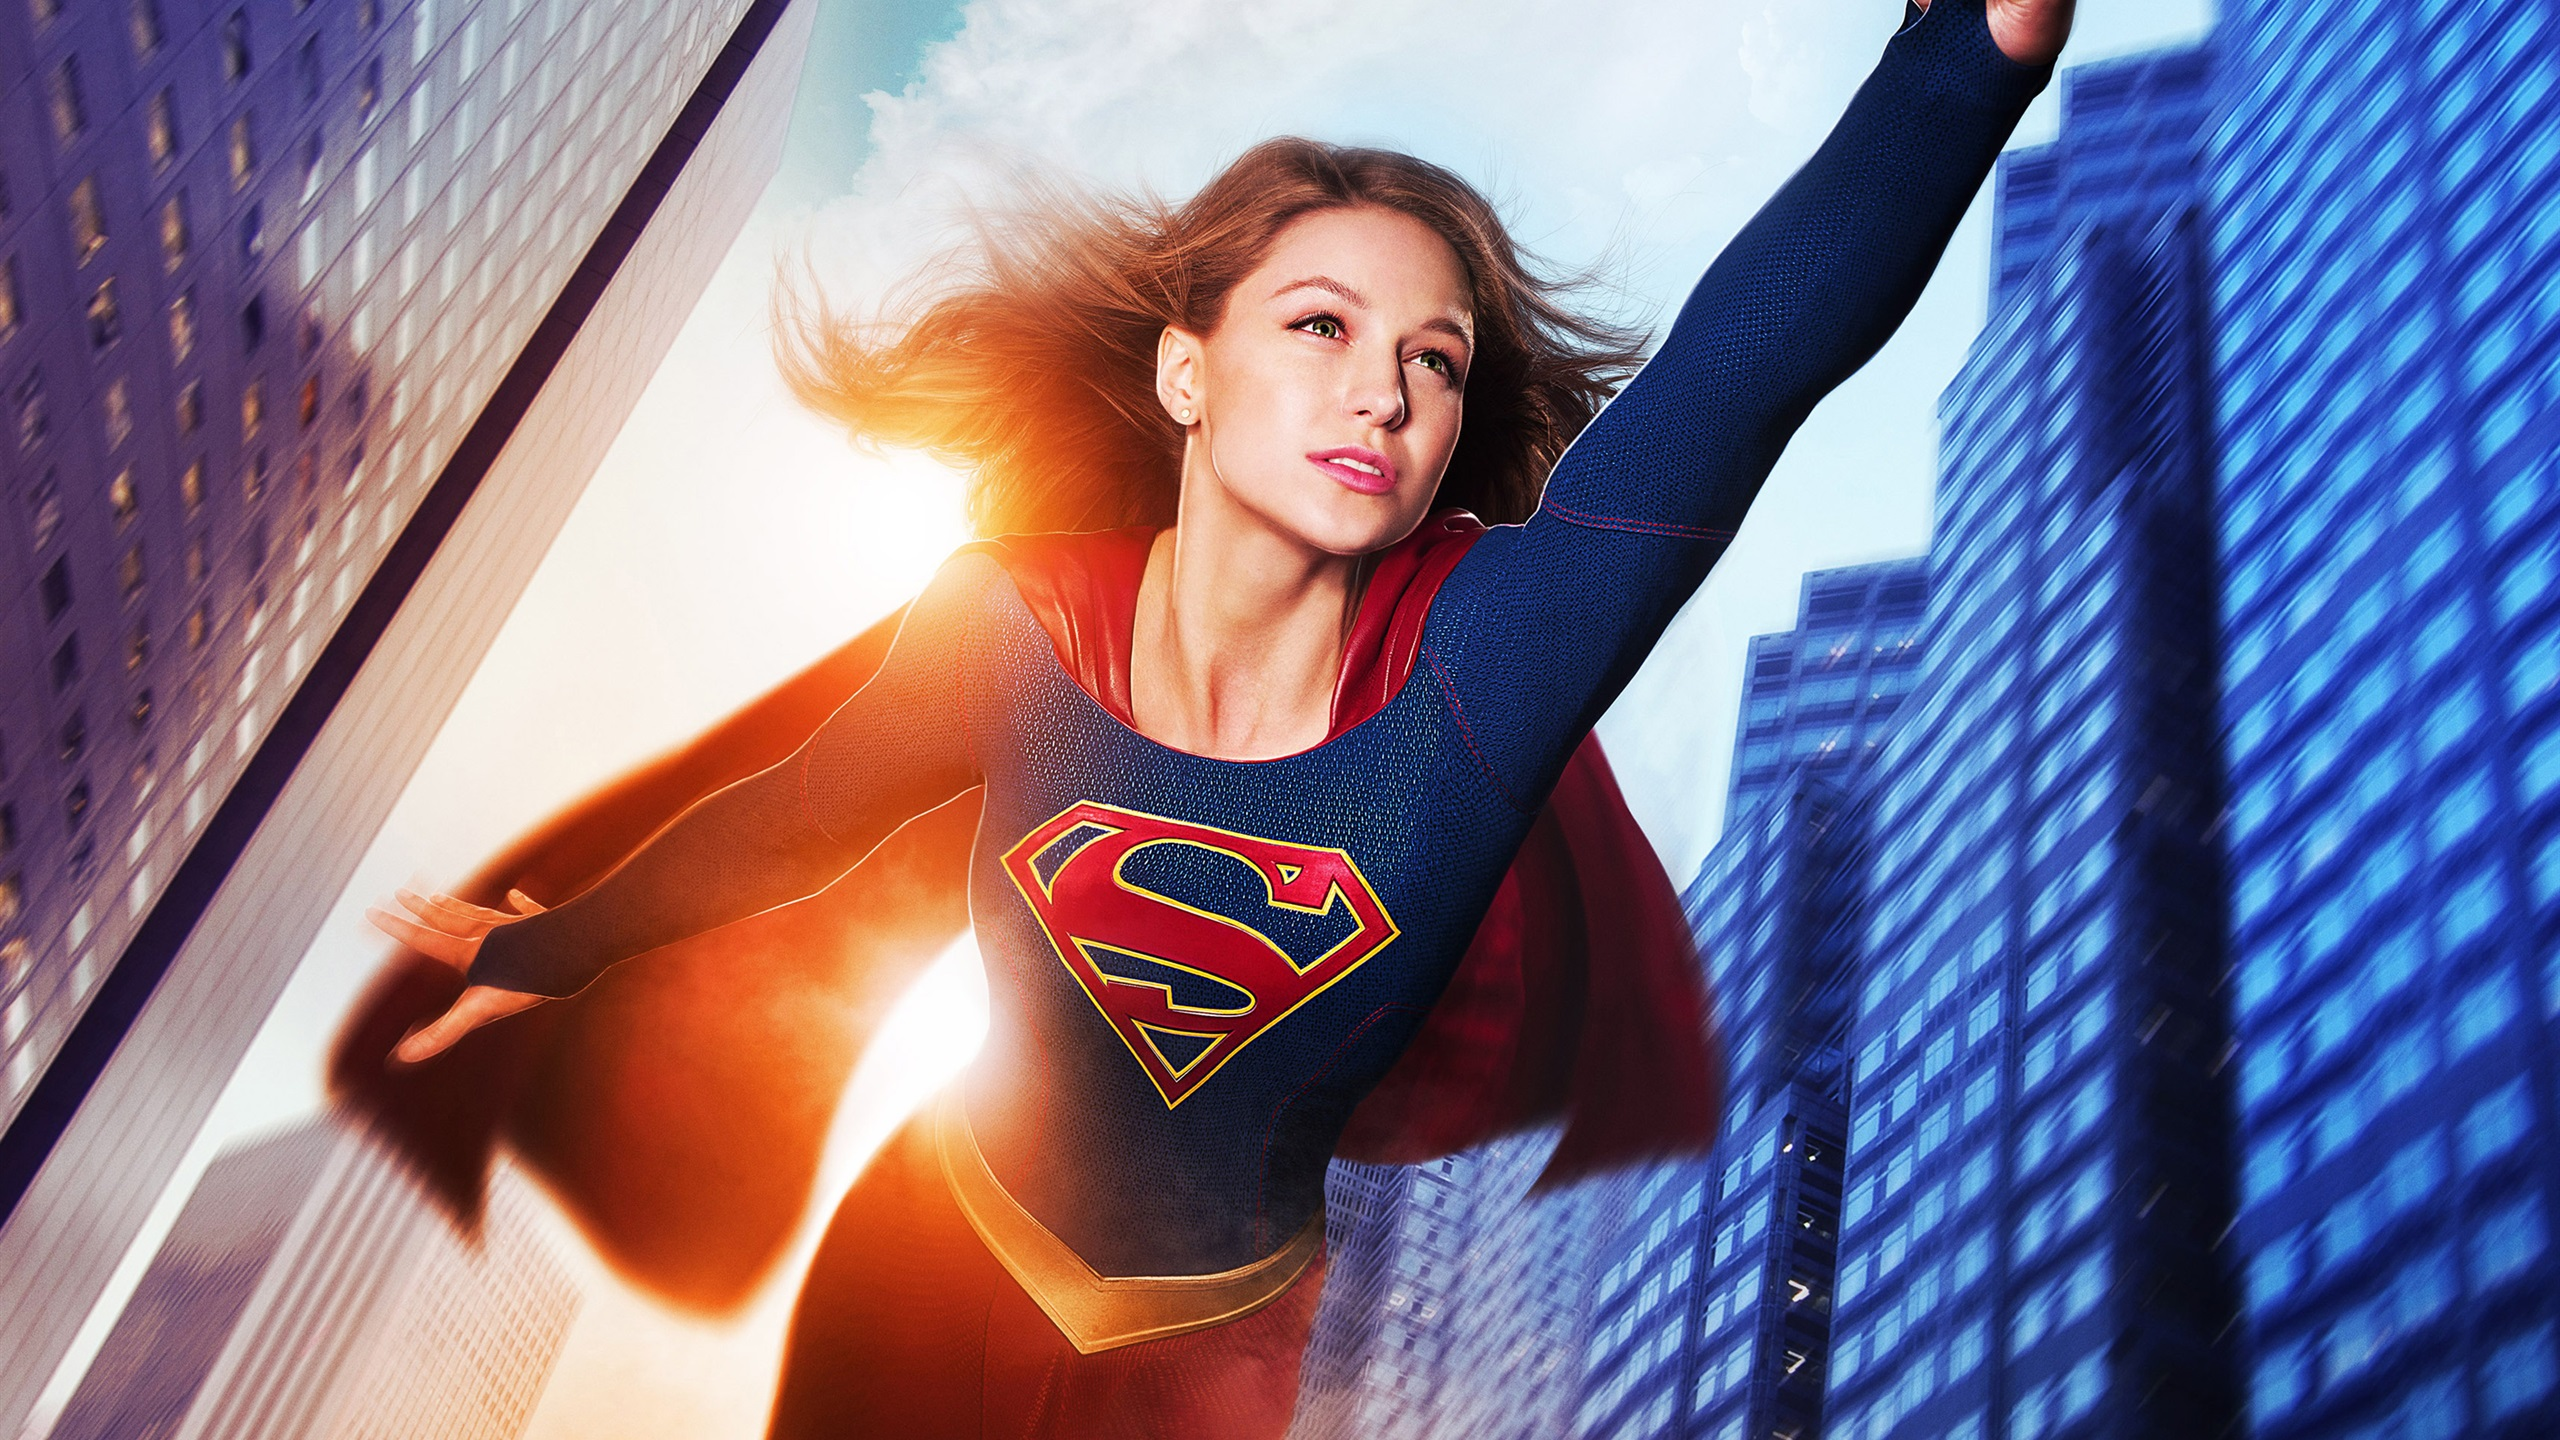 Supergirl, Melissa Benoist Wallpaper | 2560x1440 QHD resolution ...: best-wallpaper.net/Supergirl-Melissa-Benoist_2560x1440.html